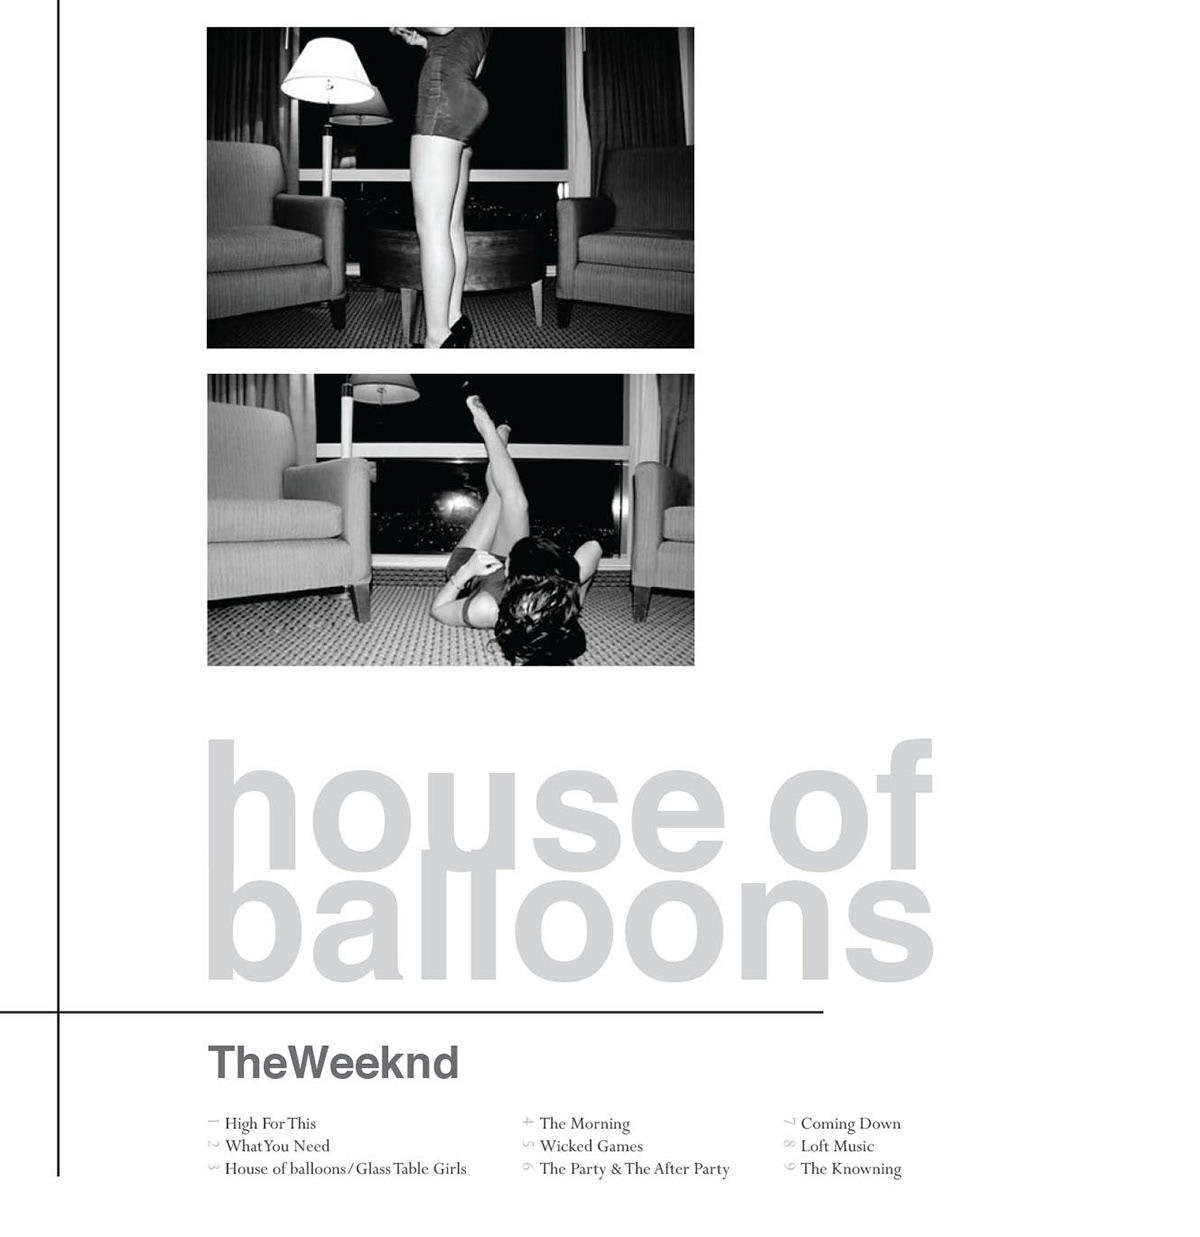 The Weeknd House Of Balloons Album Cover Redesign On Behance